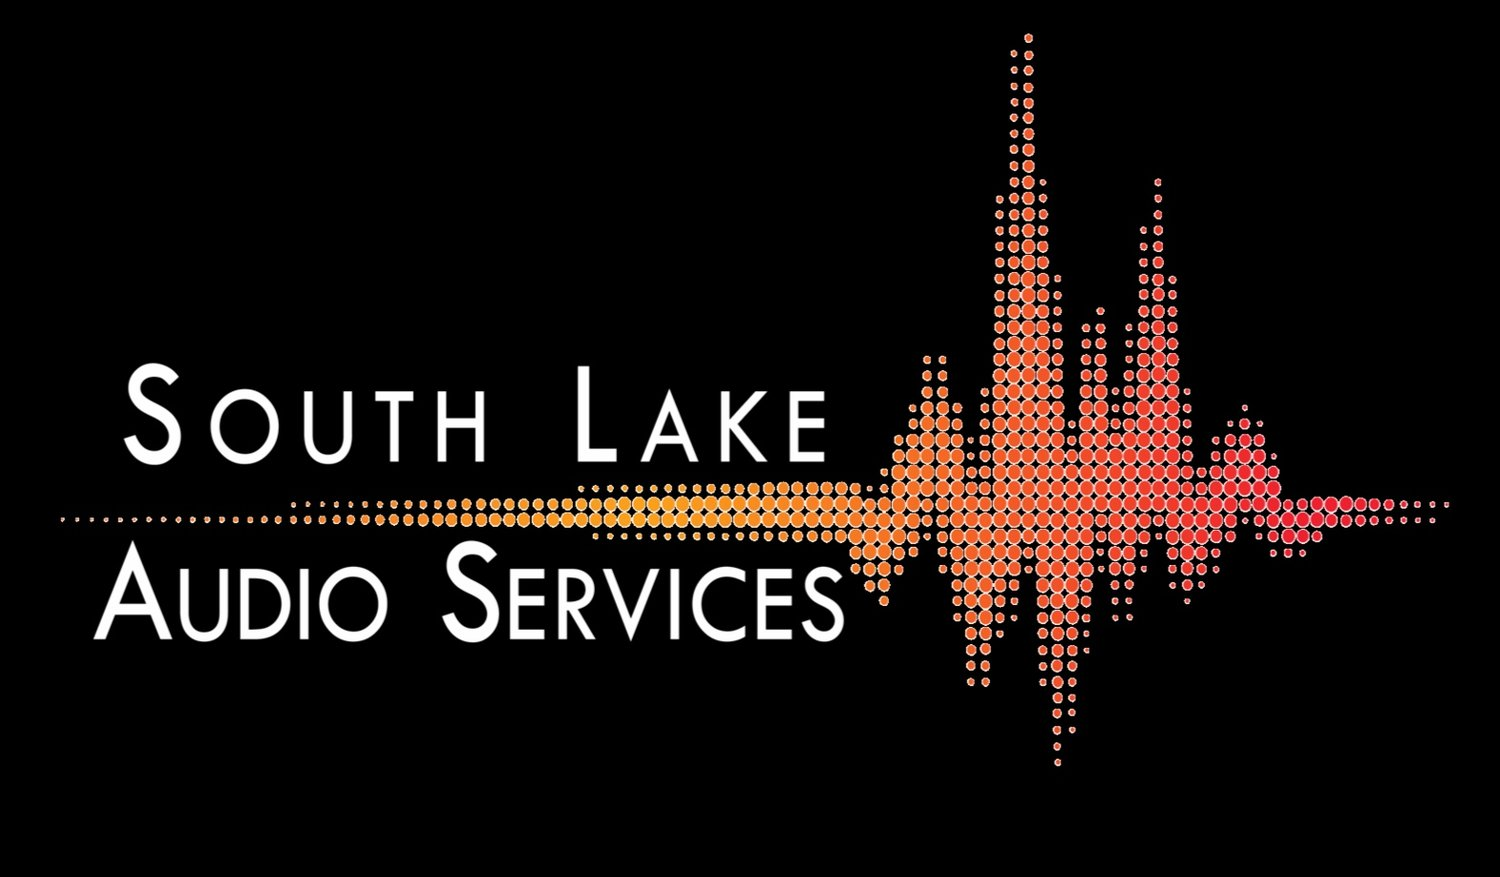 South Lake Audio Services